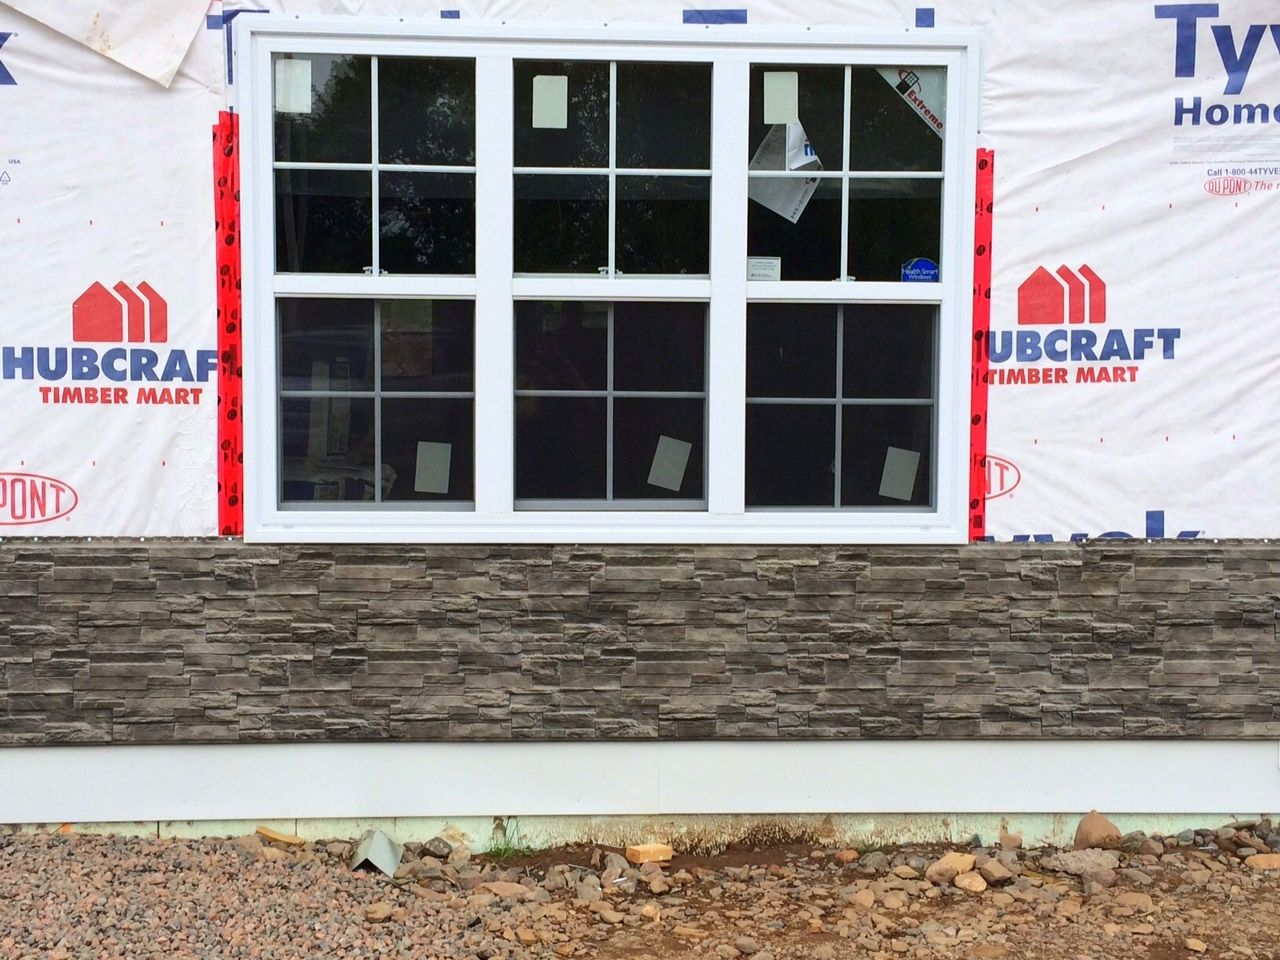 Quality Building Materials From Hubcraft Timber Mart Truro Nova Scotia Novik Stone Dry Stack Stone Ant House Paint Exterior Exterior French Doors Exterior